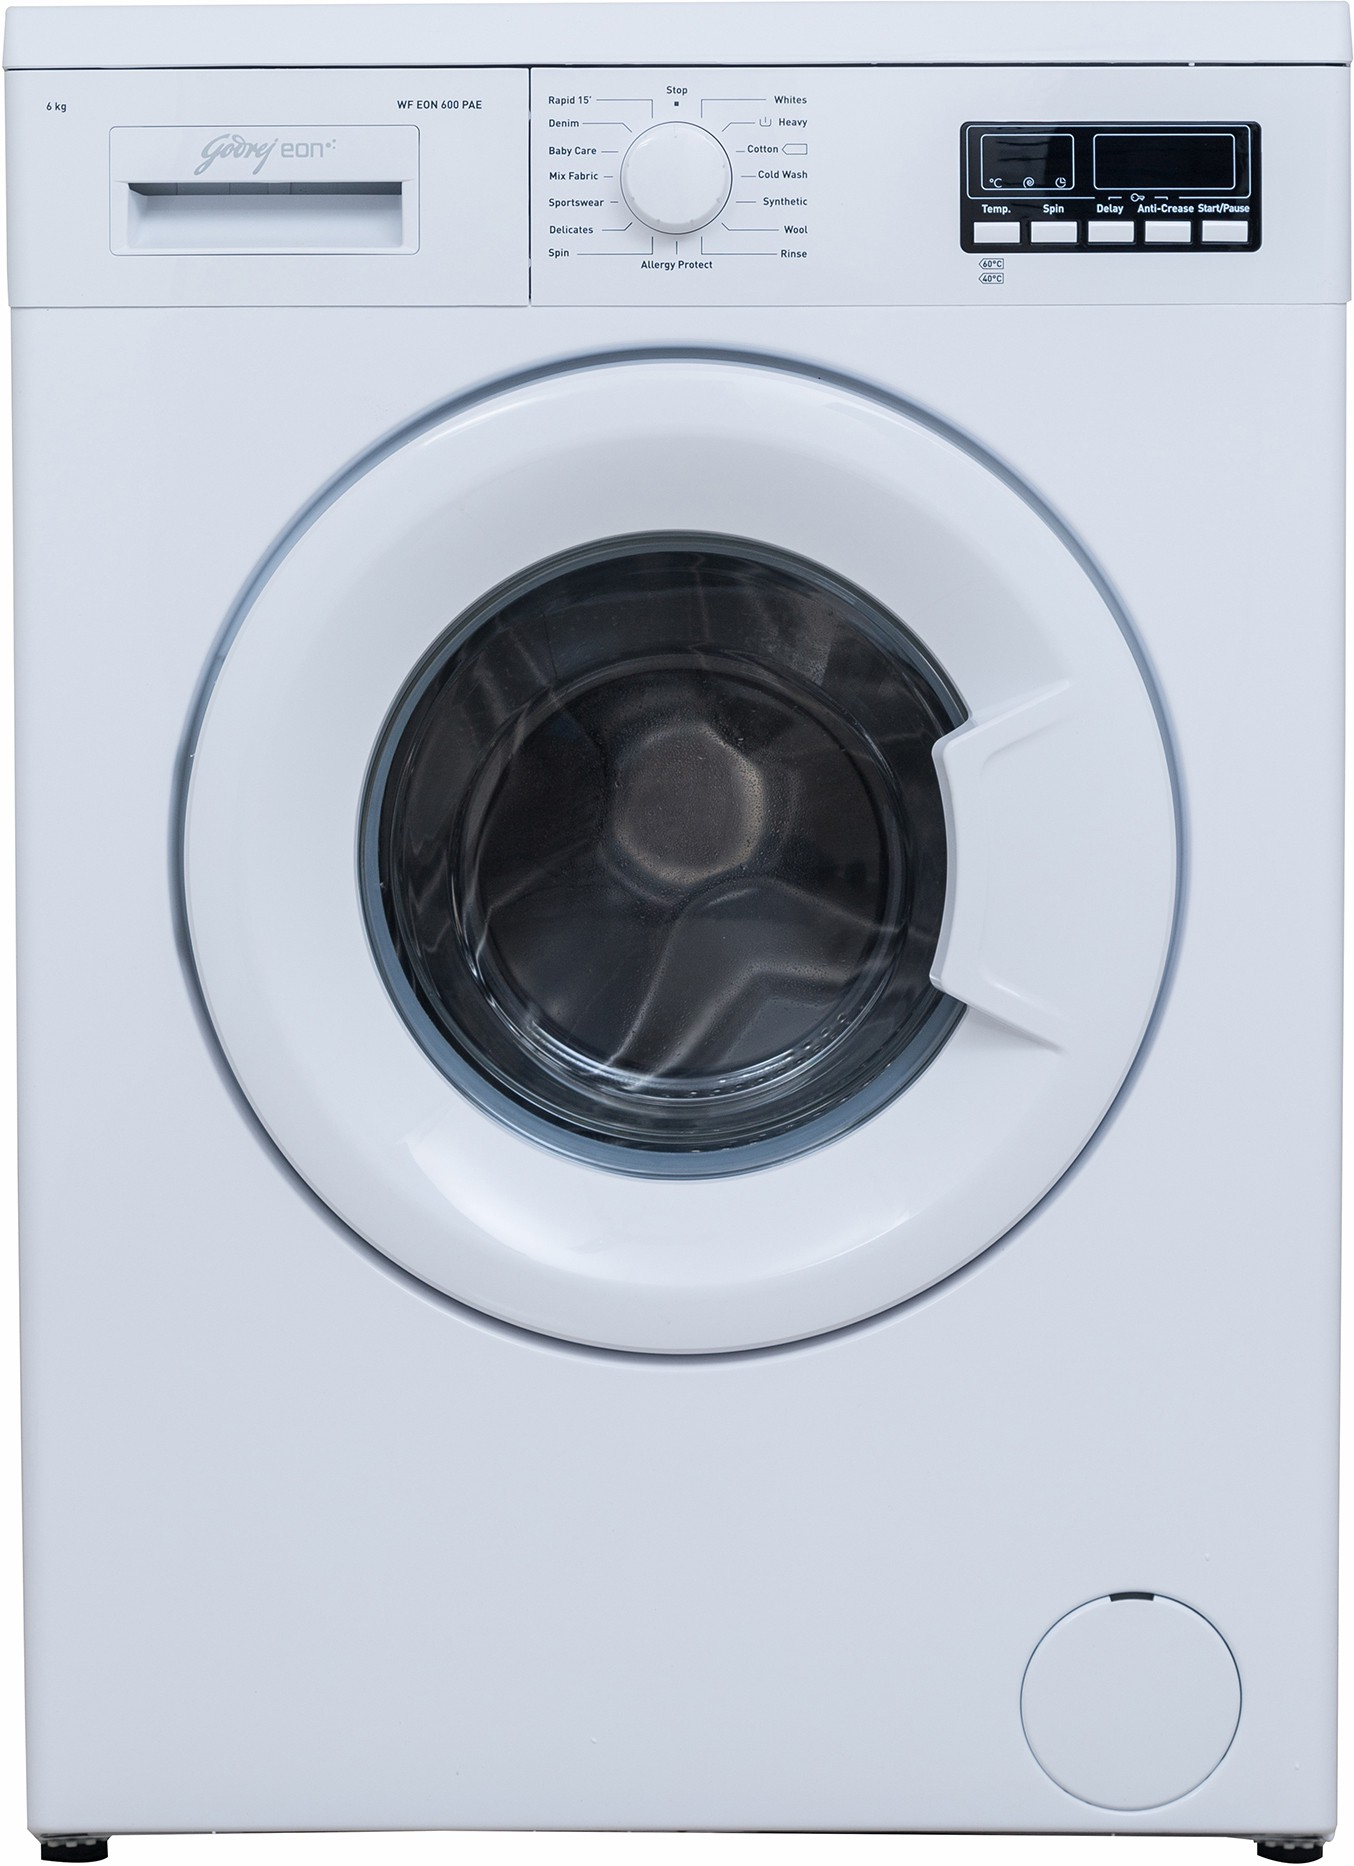 Godrej 6 kg Fully Automatic Front Load Washing Machine (WF Eon 600 PAE) Image